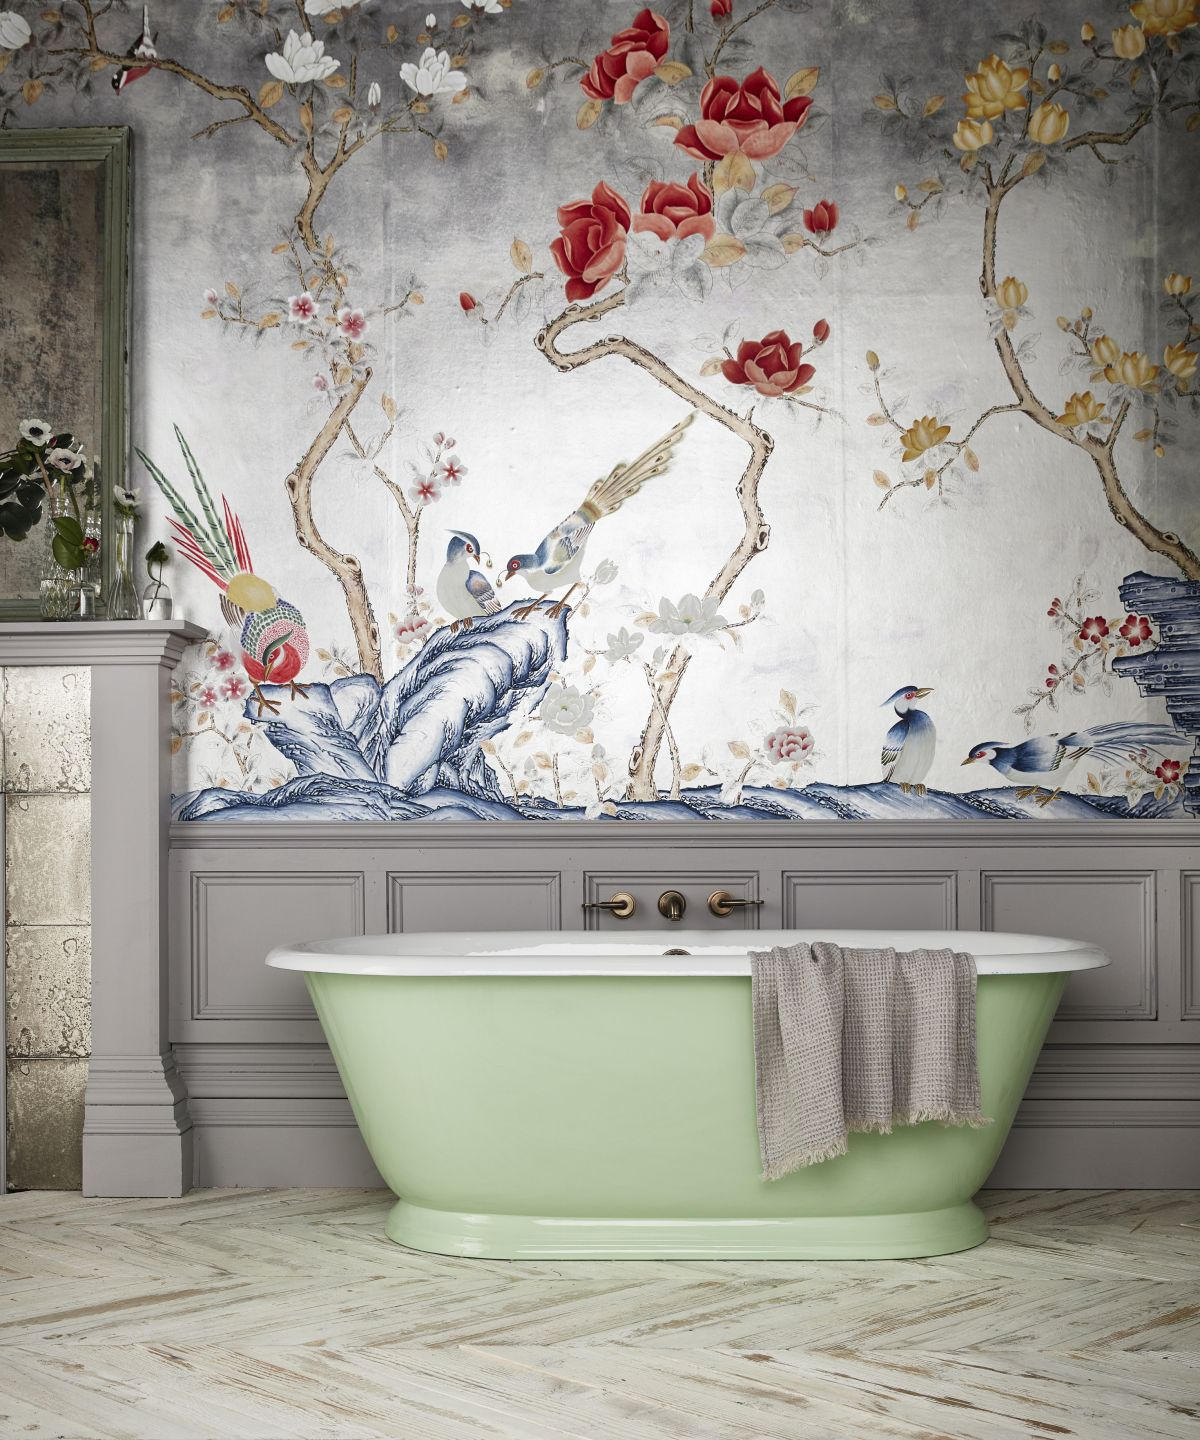 Luxe, glossy bathrooms are 2022's big trend prediction – experts reveal the upsides of this new look